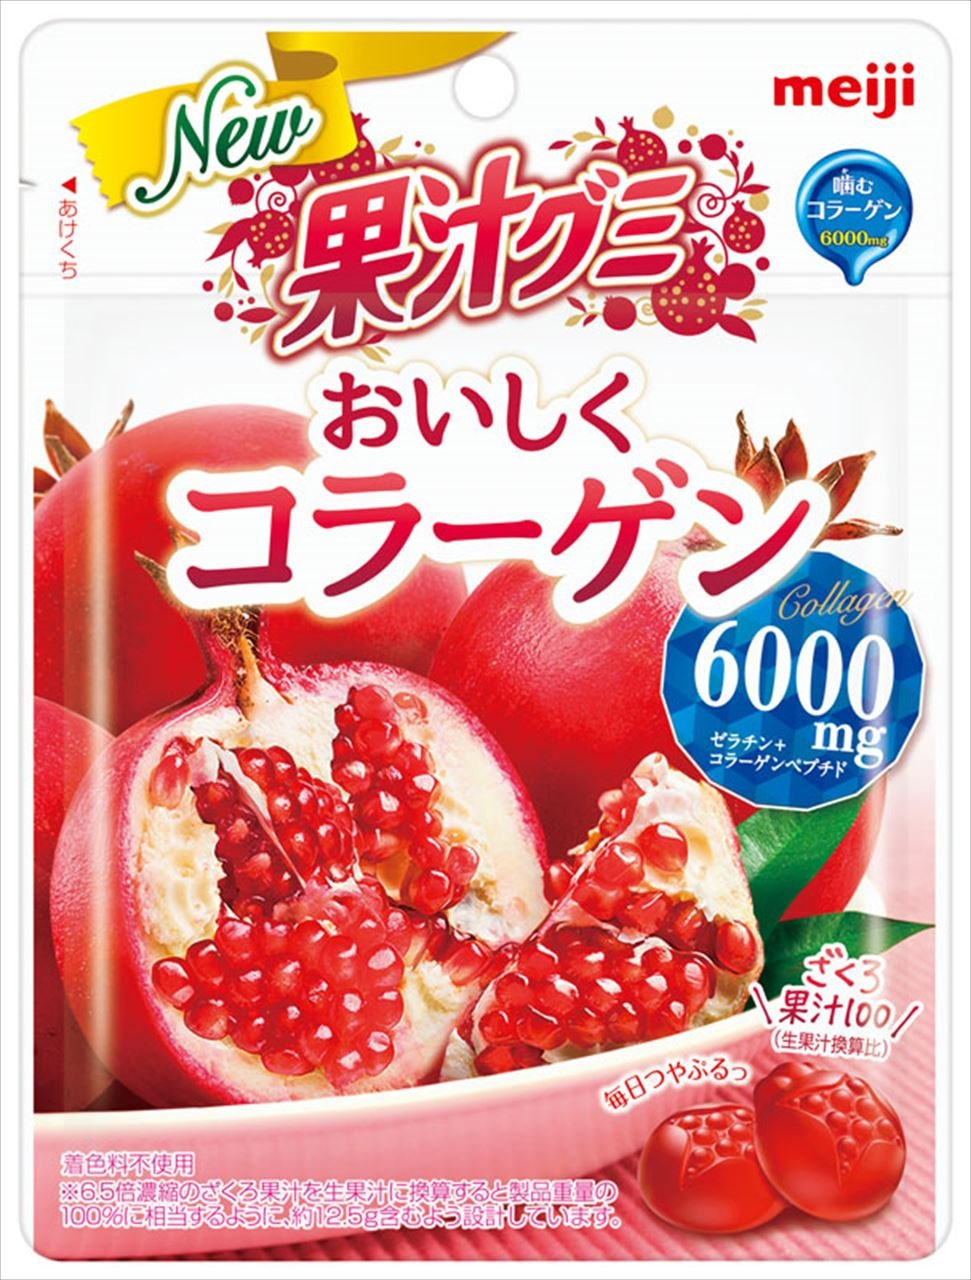 MEIJI JELLY GUMMY POMEGRANATE COLLAGEN 6000 mg.Easy to eat make bright skin 100% natural extracts 81 g. From Japan.